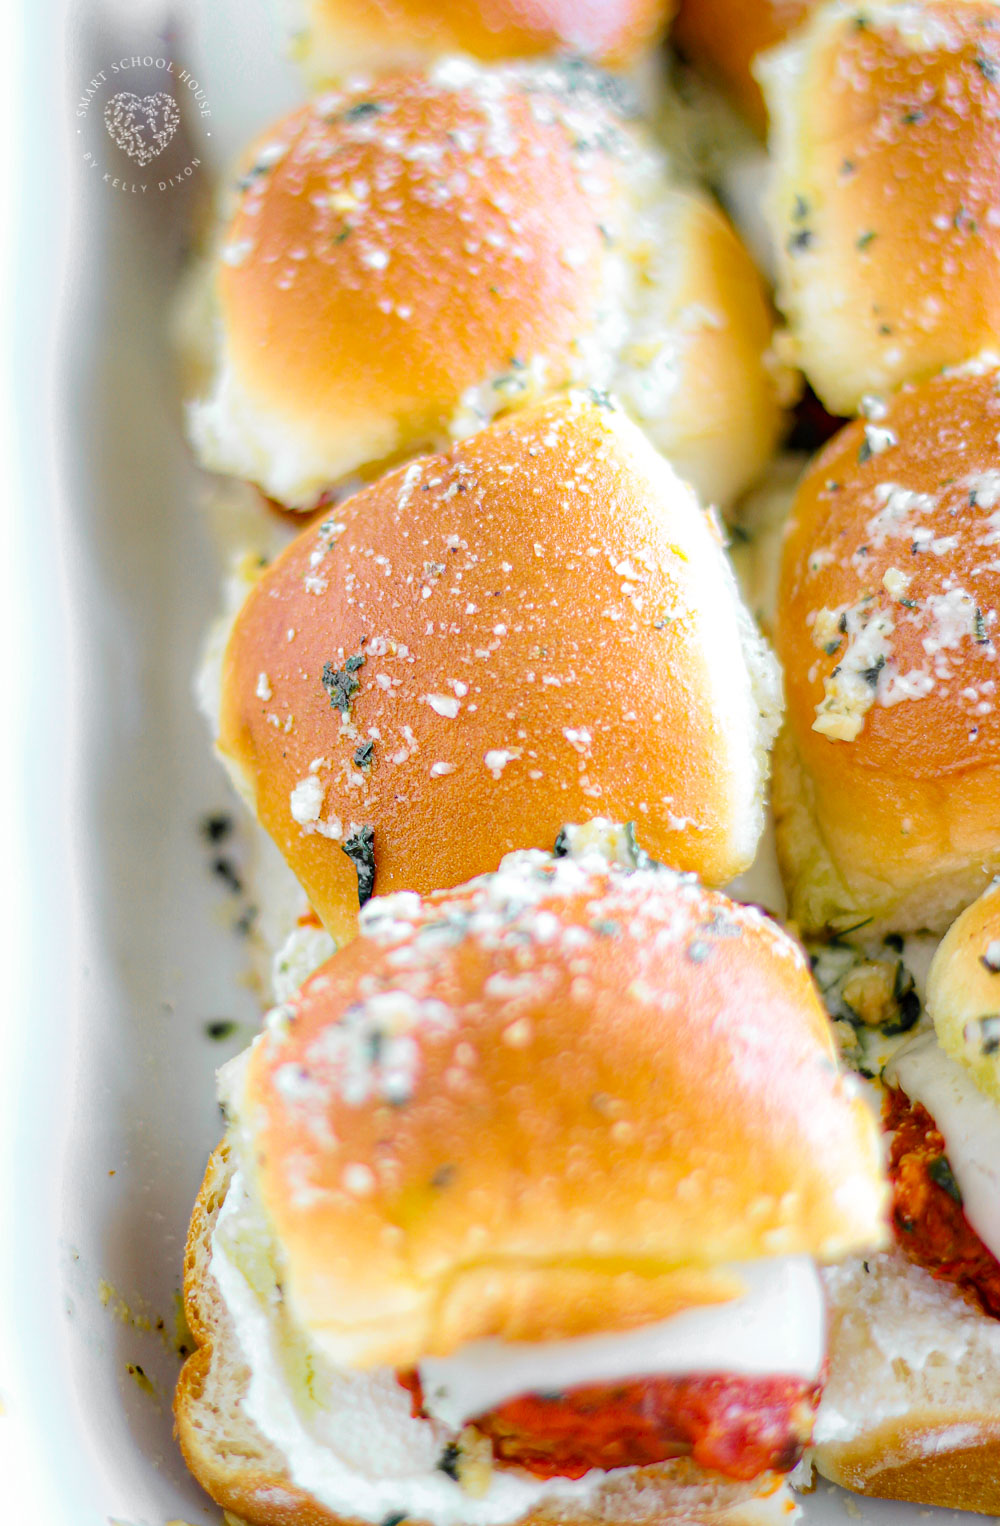 Cheesy Meatball Sub Sliders - These cheesy, garlic butter mini meatball sub sliders are perfect for parties, snacks and weeknight meals + holidays! Easily homemade and delicious recipe!